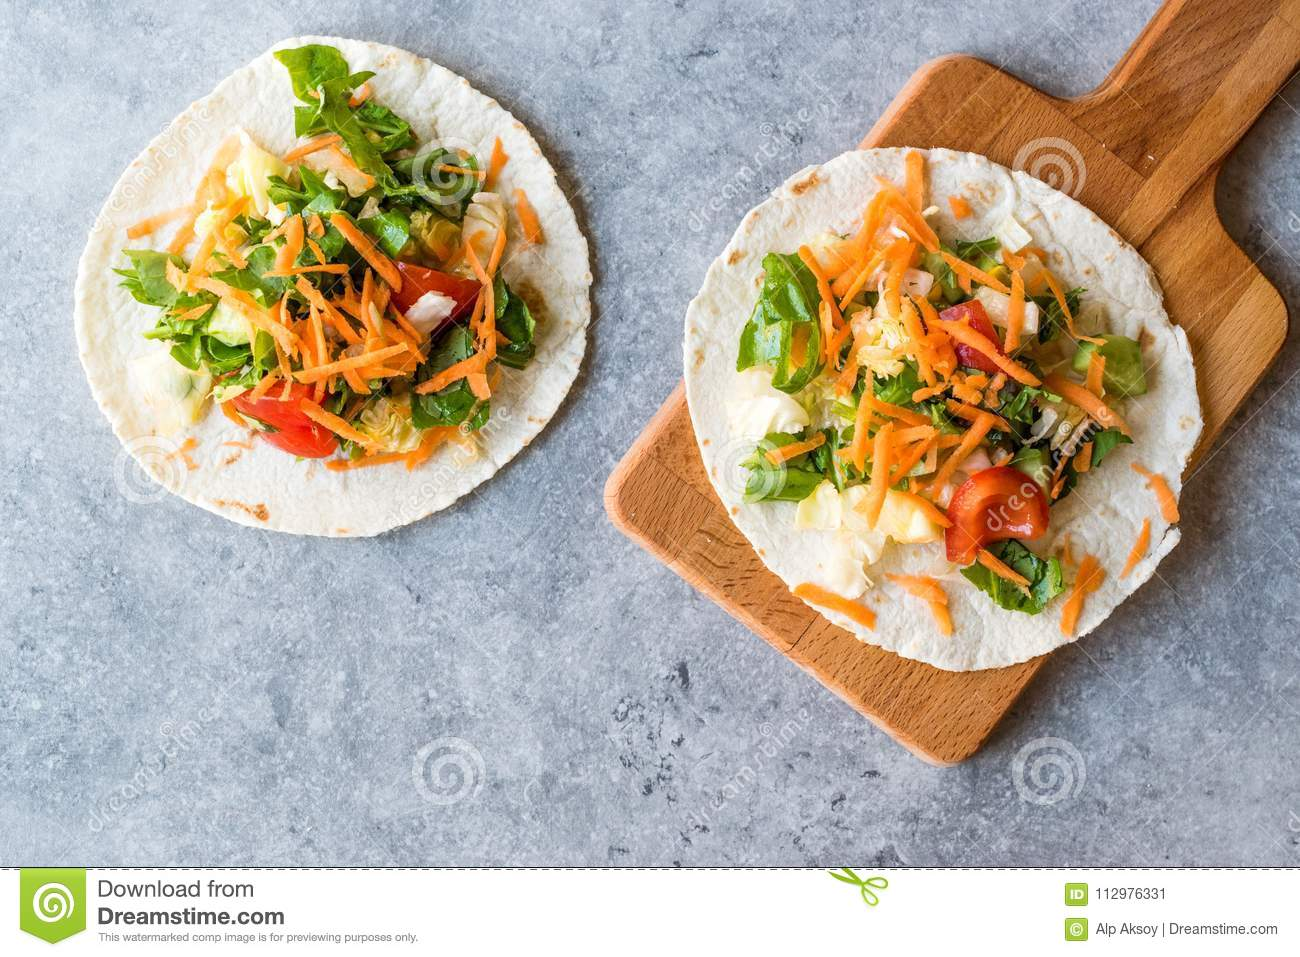 Homemade Vegetarian Tostadas with Salad and Polished Carrot Slices.